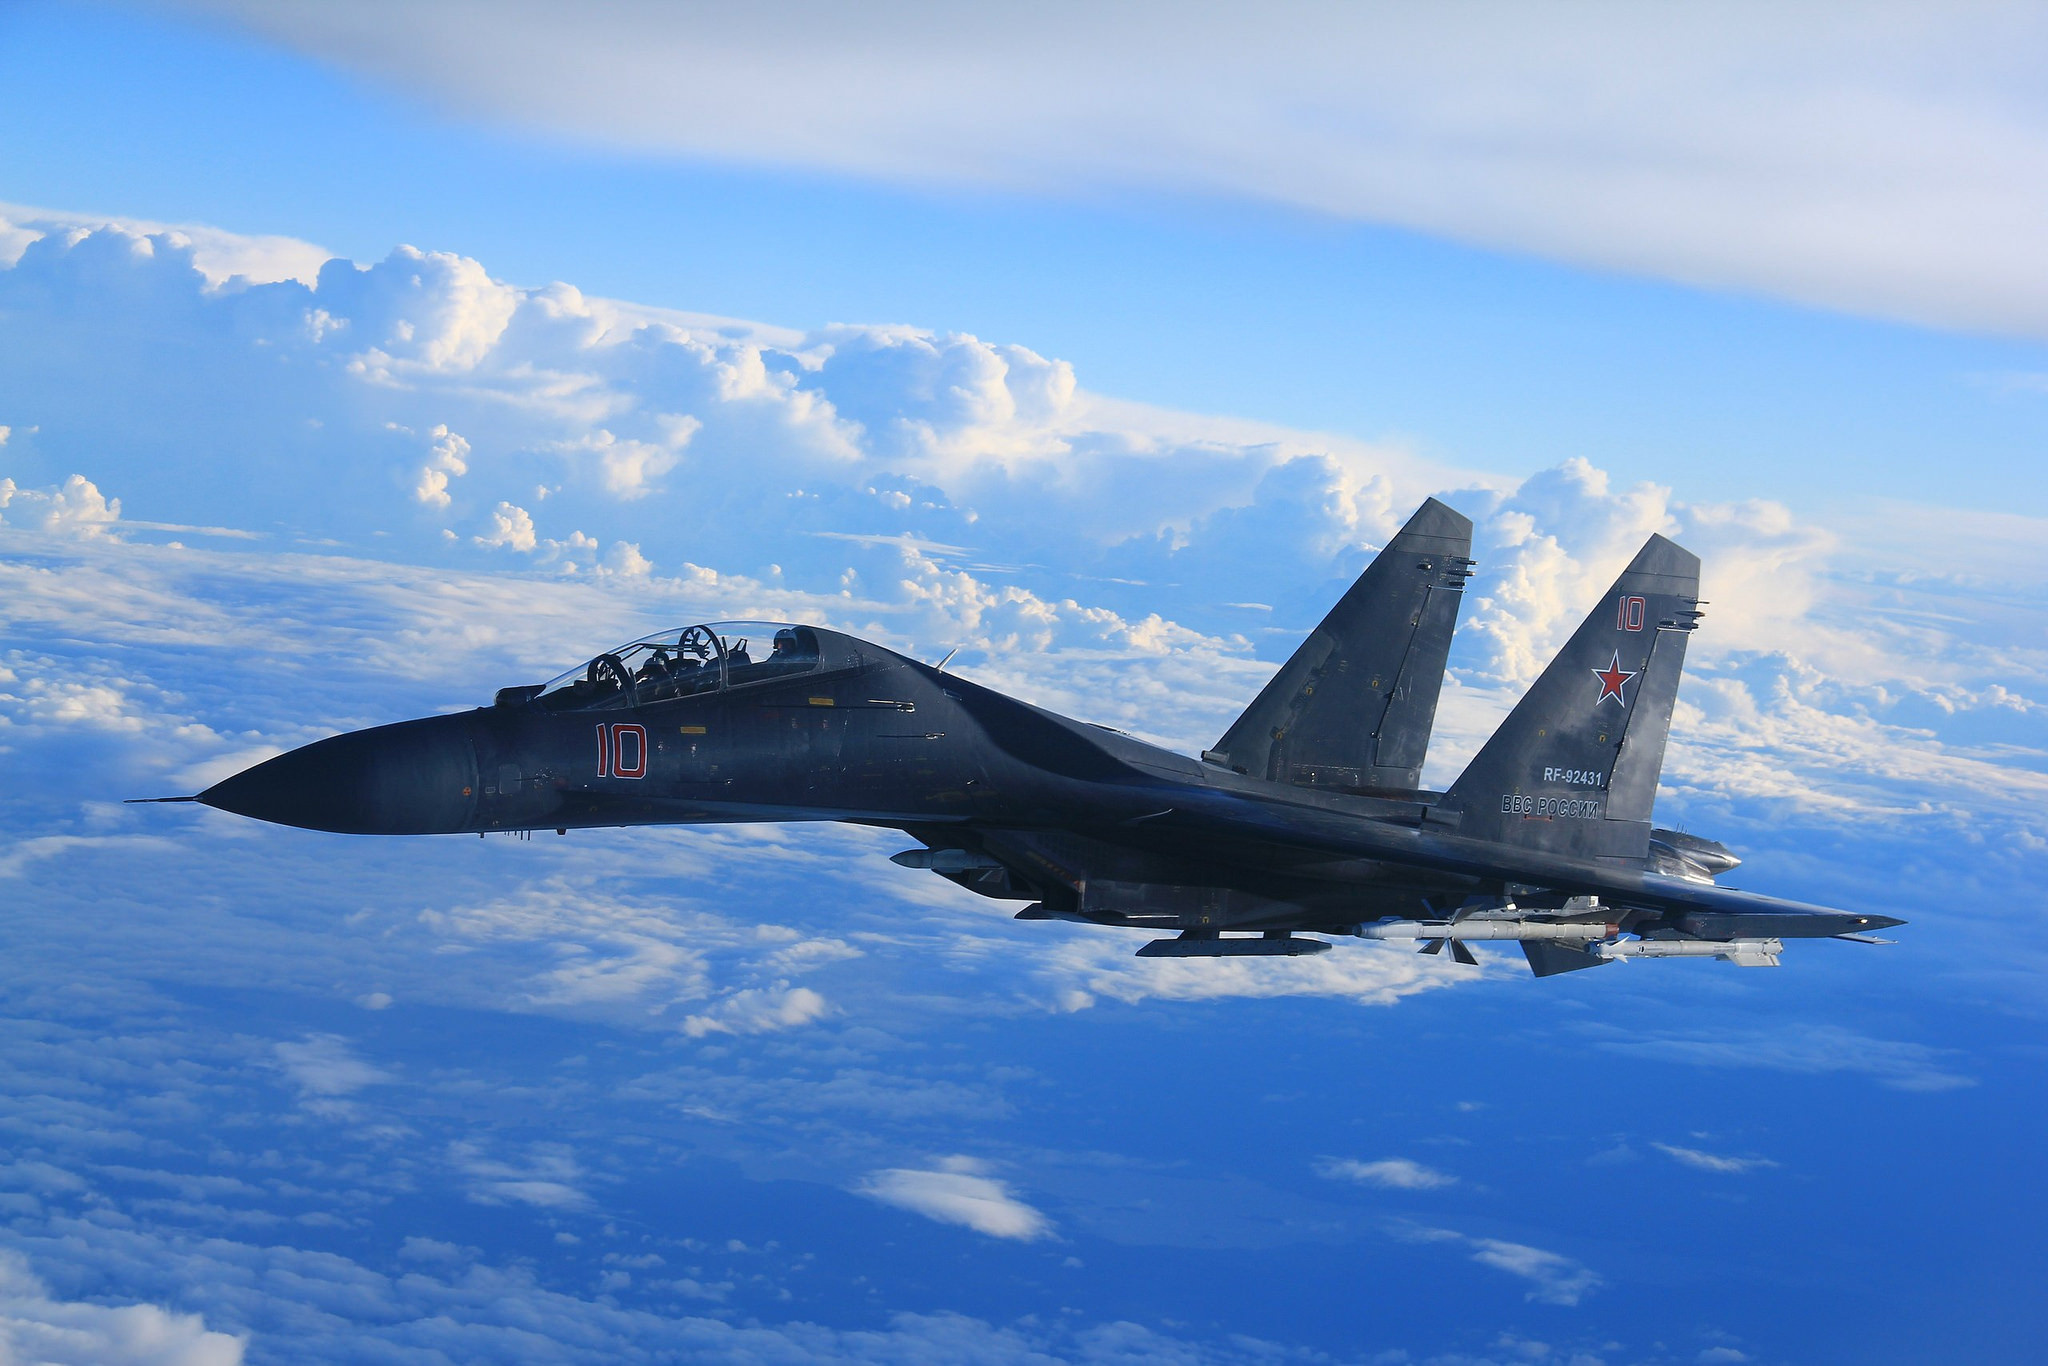 SU-35 is the latest model of SU-27 with more advance, powerful engine & radar